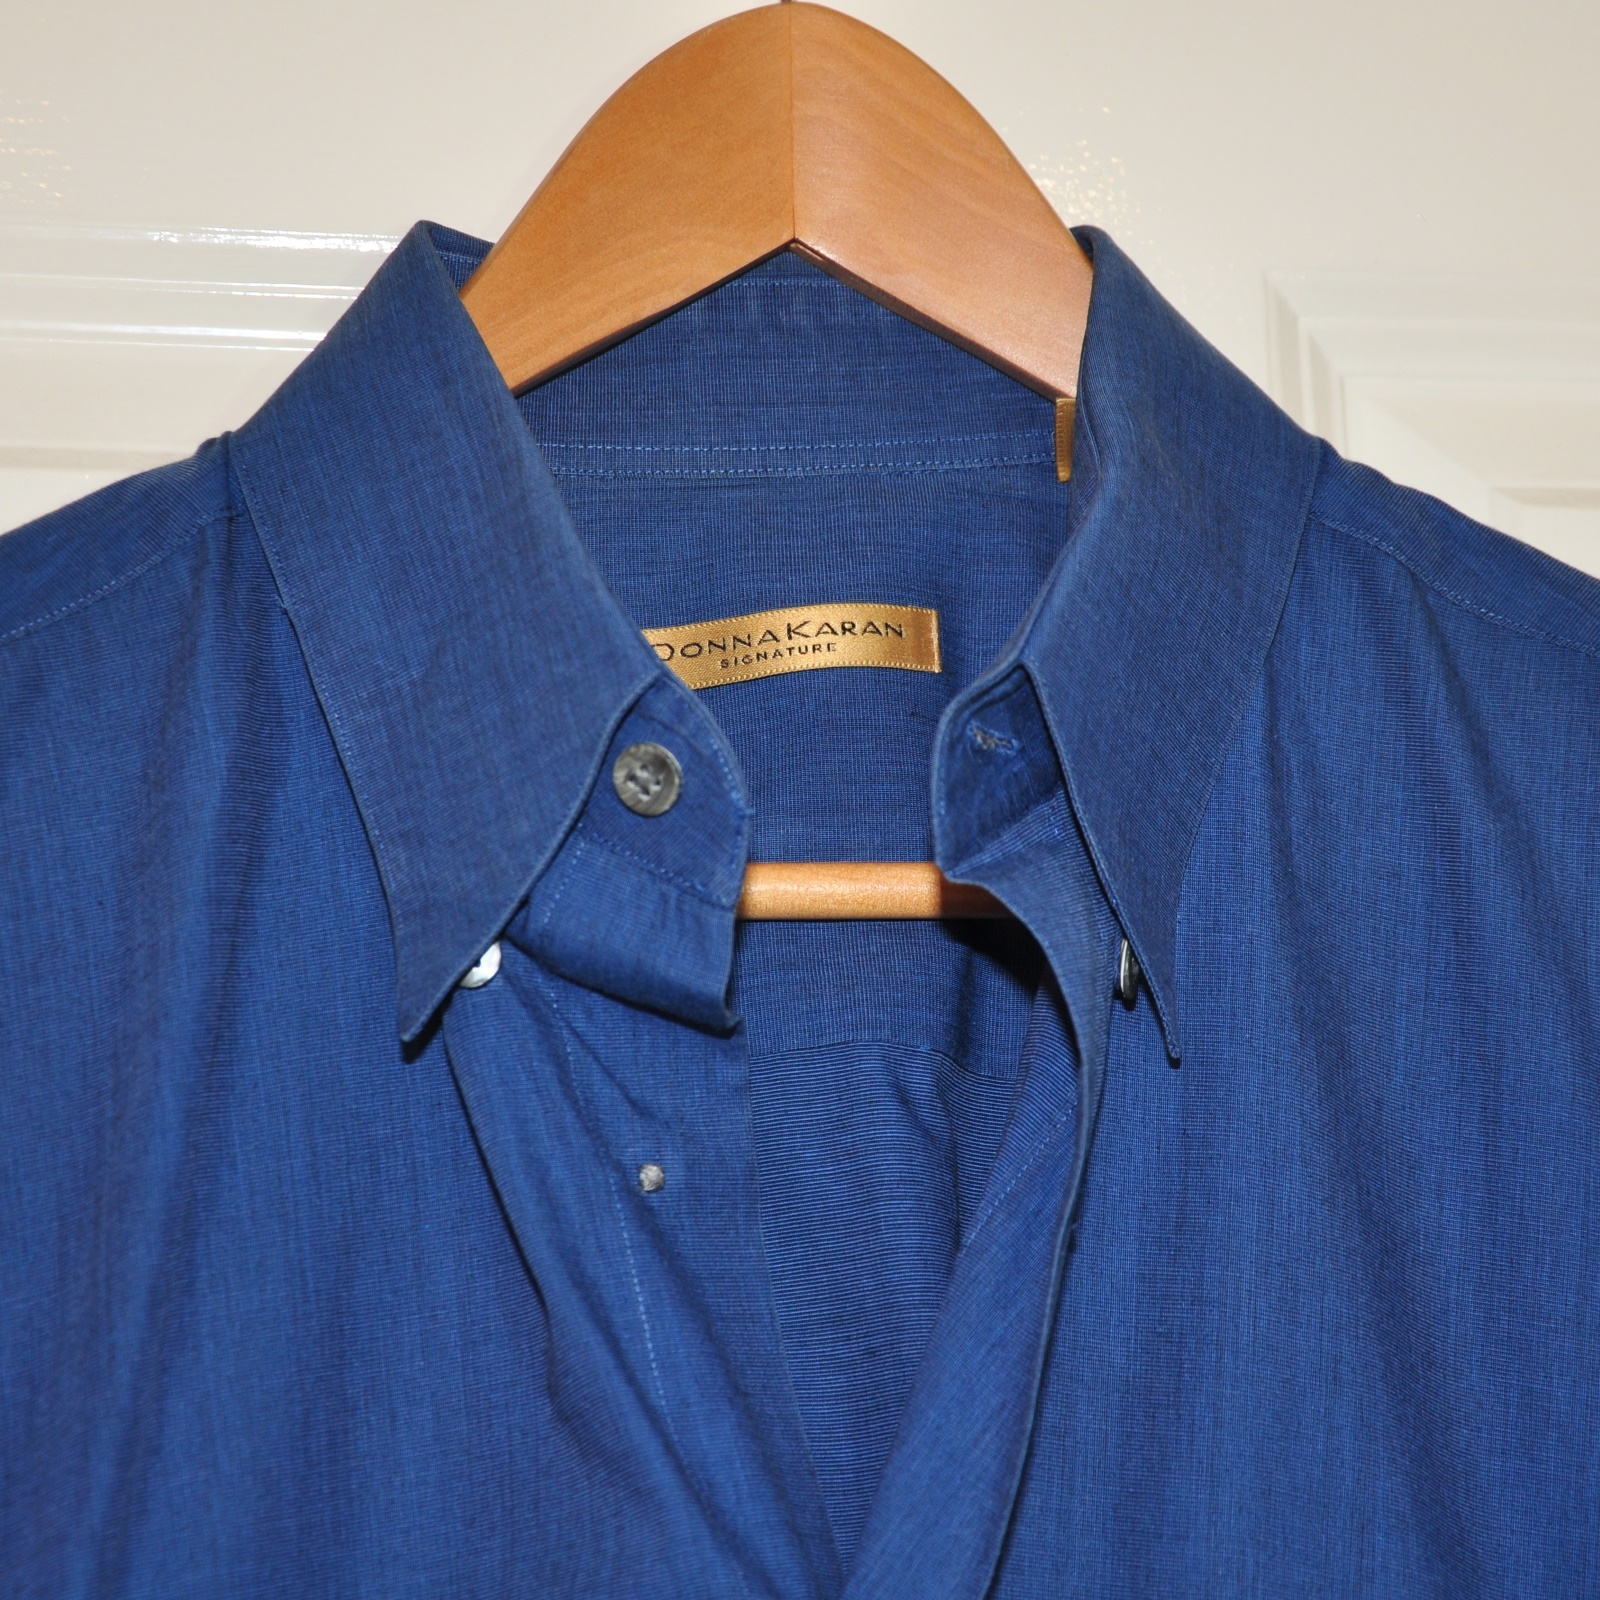 Donna Karan Mens Dress Shirts